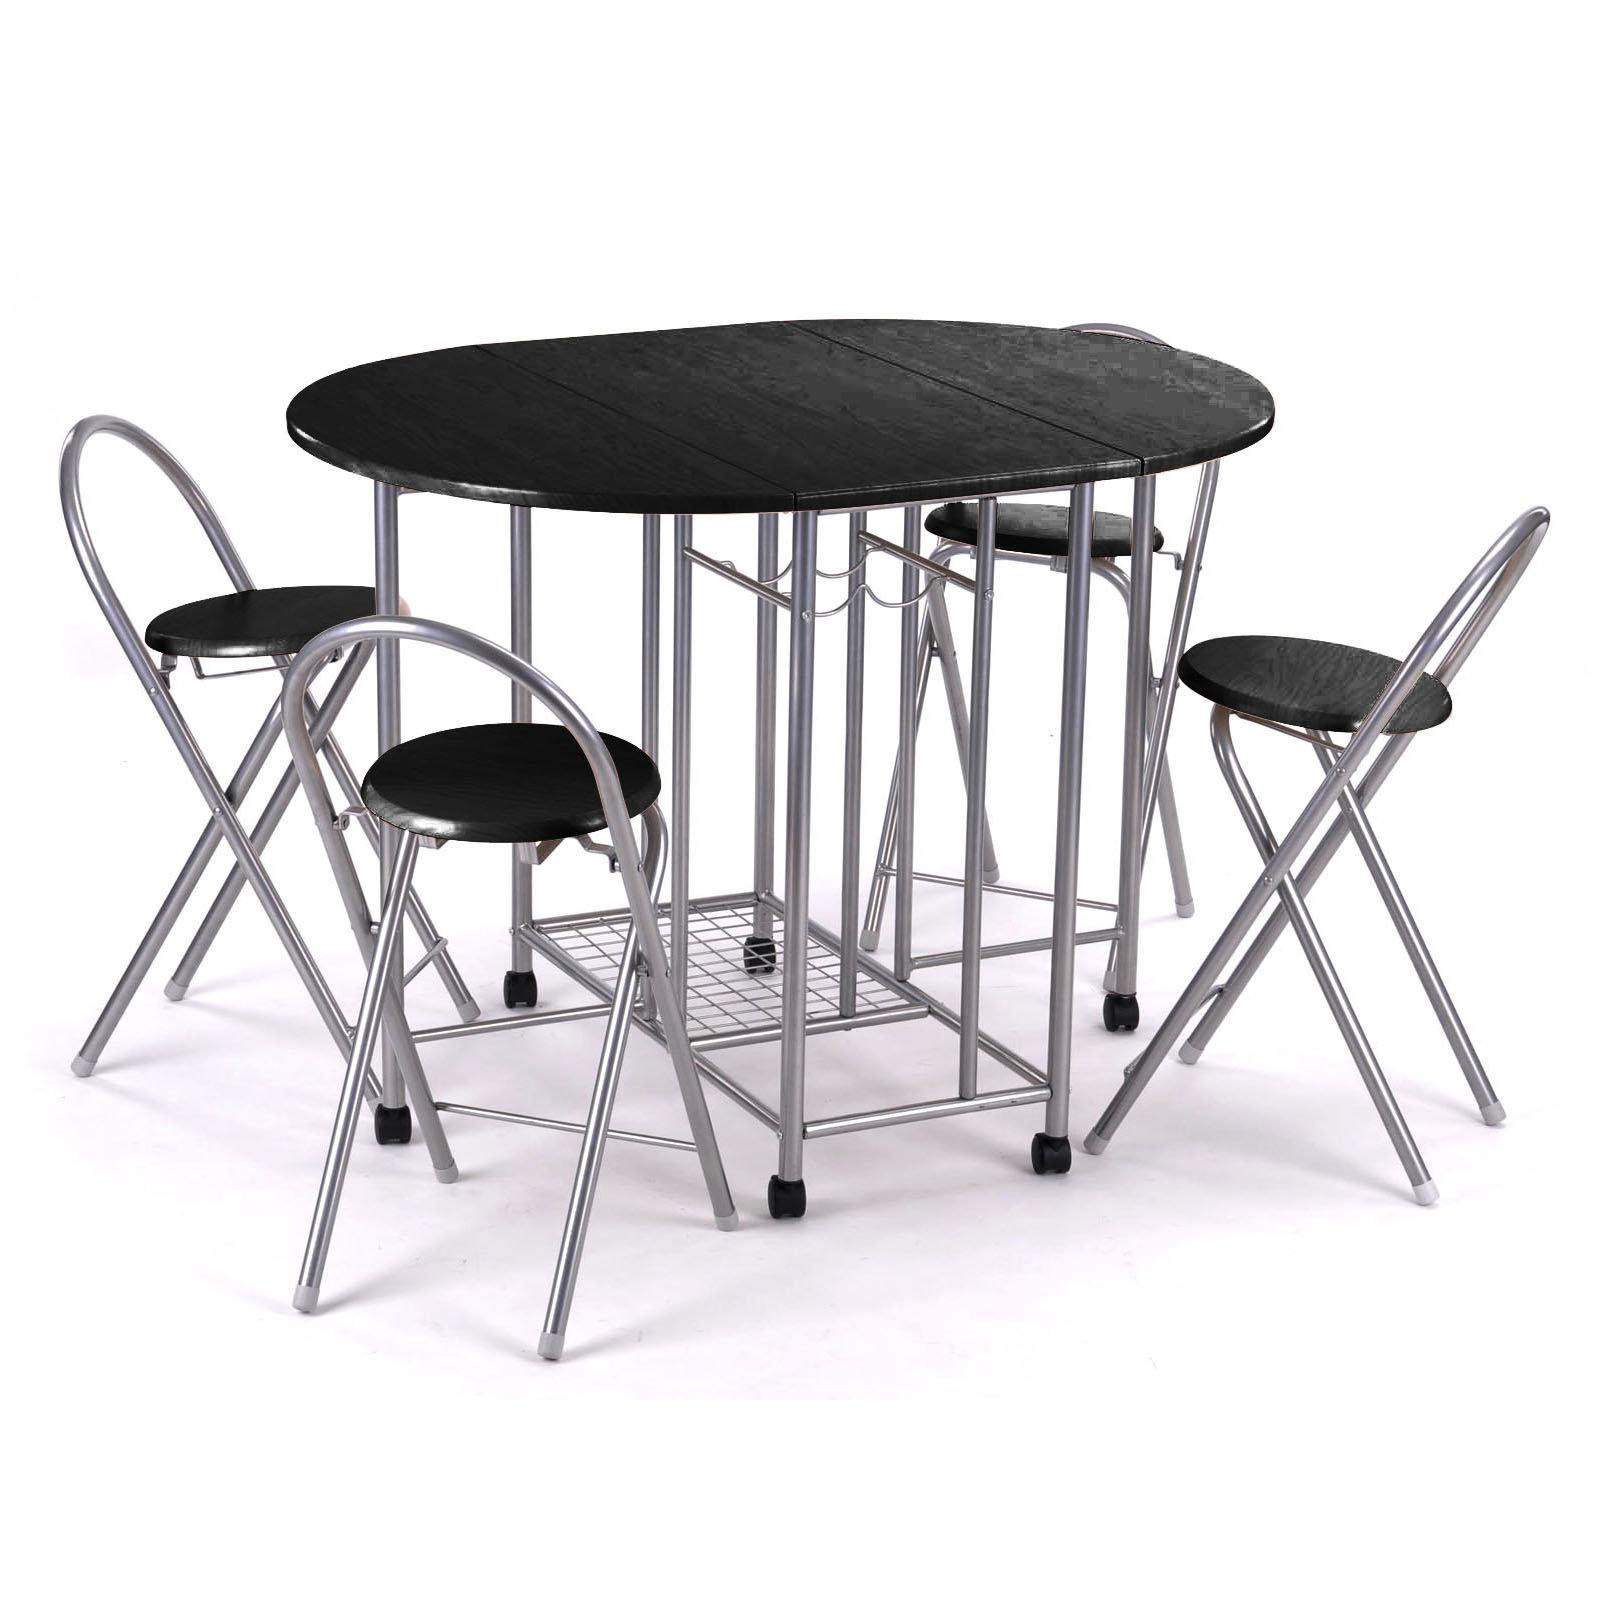 5pc kitchen dinette dinning folding table and chairs set for Black kitchen table set